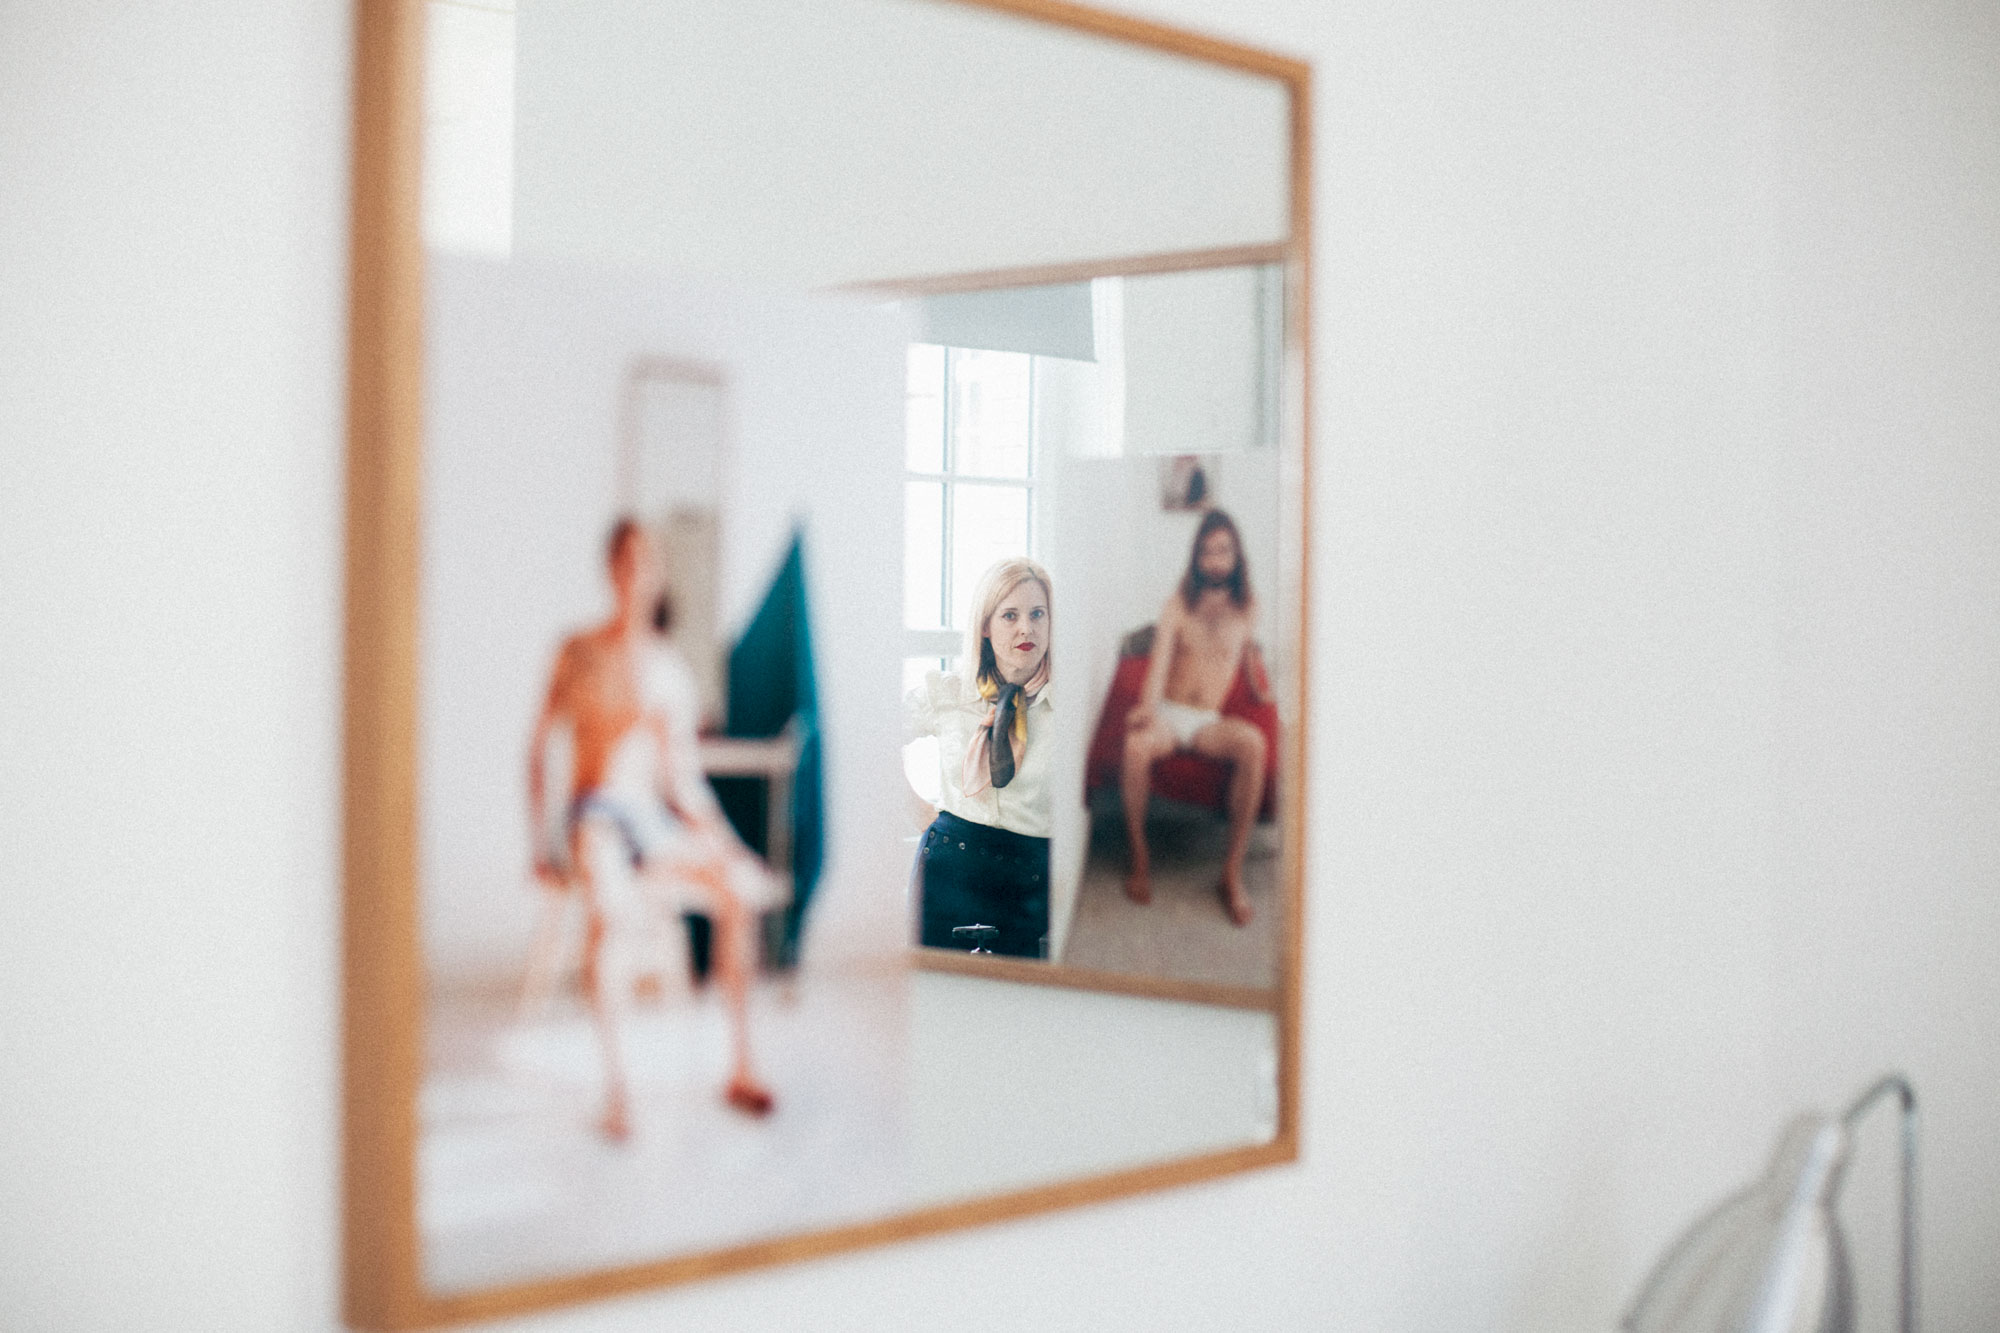 Mirrors have made frequent appearances in Lyndal Walkers workMirrors have made frequent appearances in Lyndal Walkers work